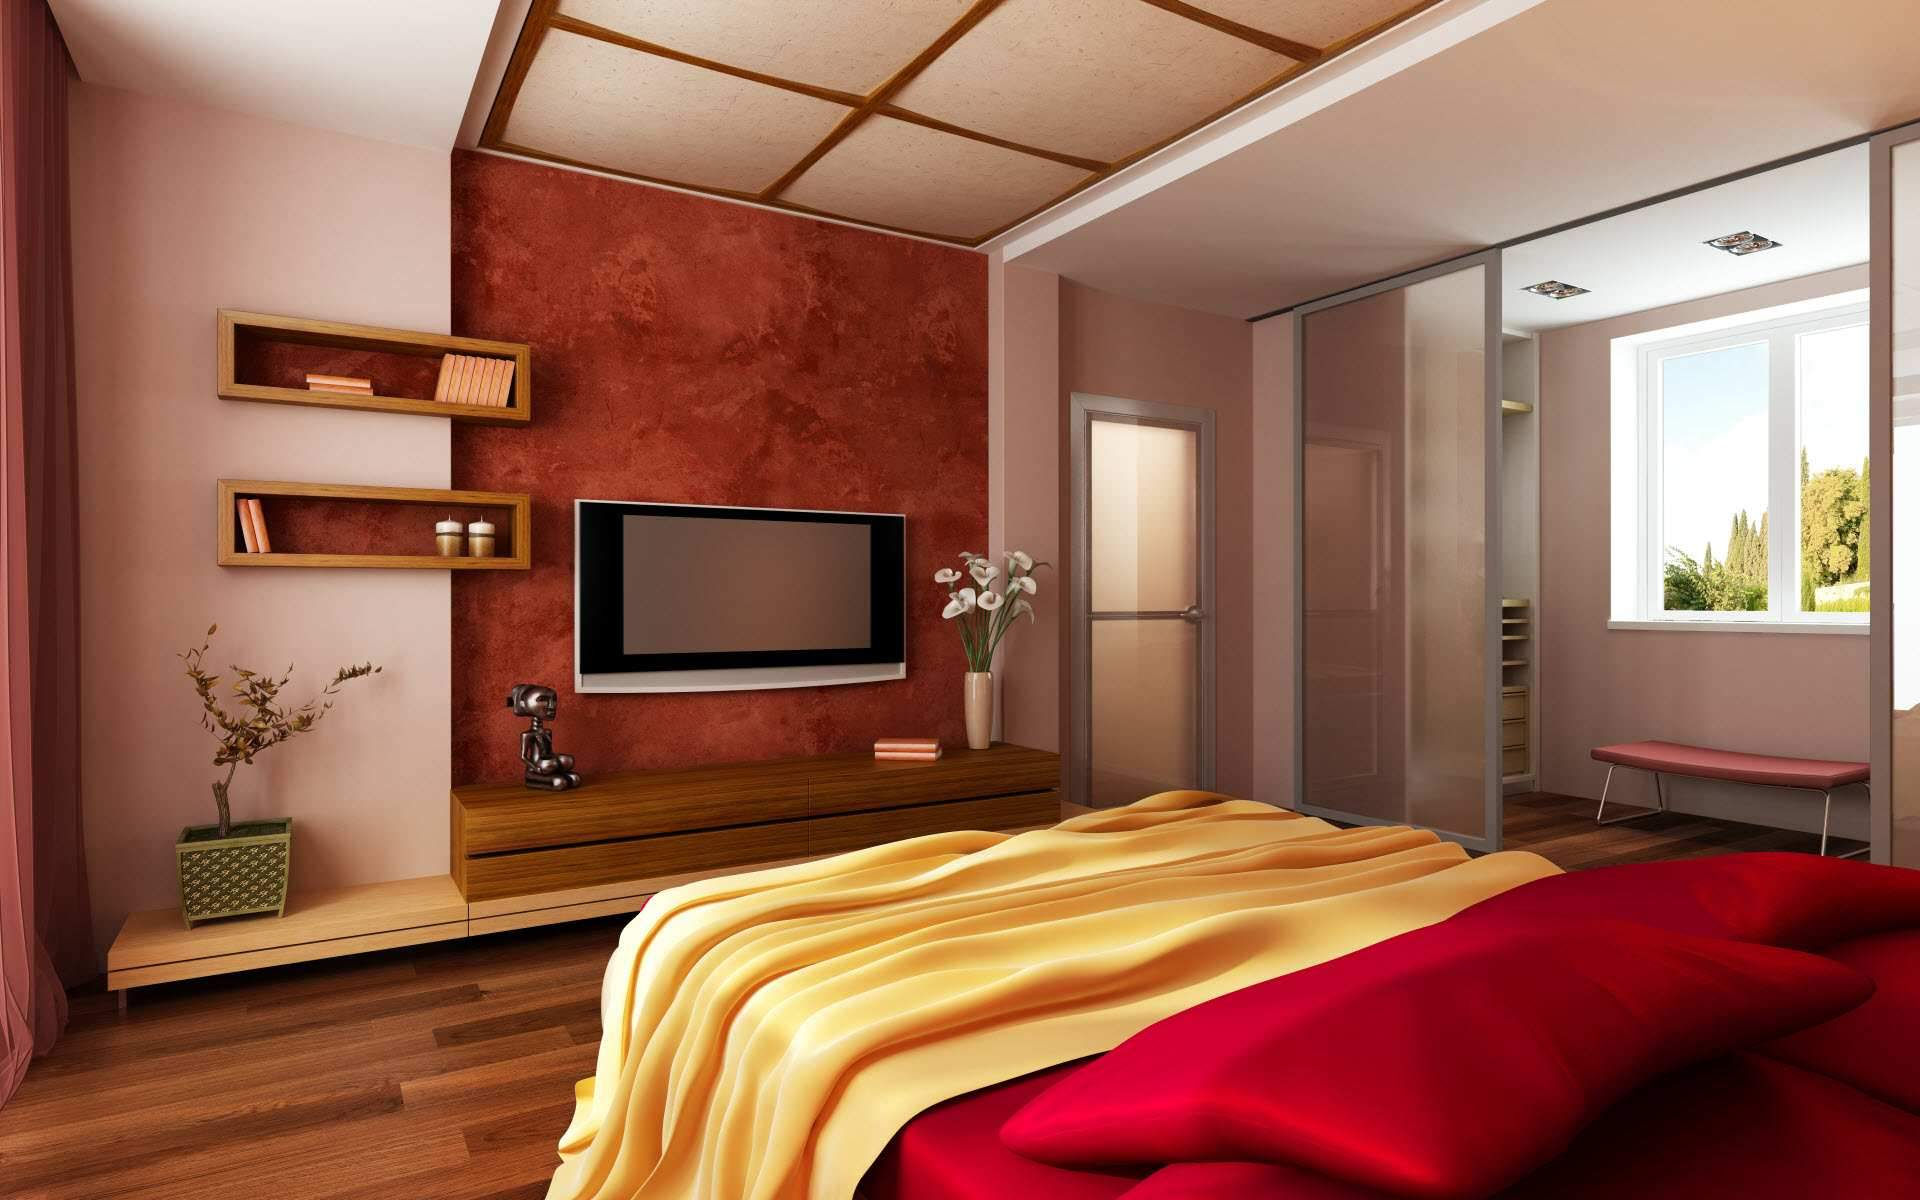 Luxury-Bed-Room-Home-Interior-Design-Ideas22